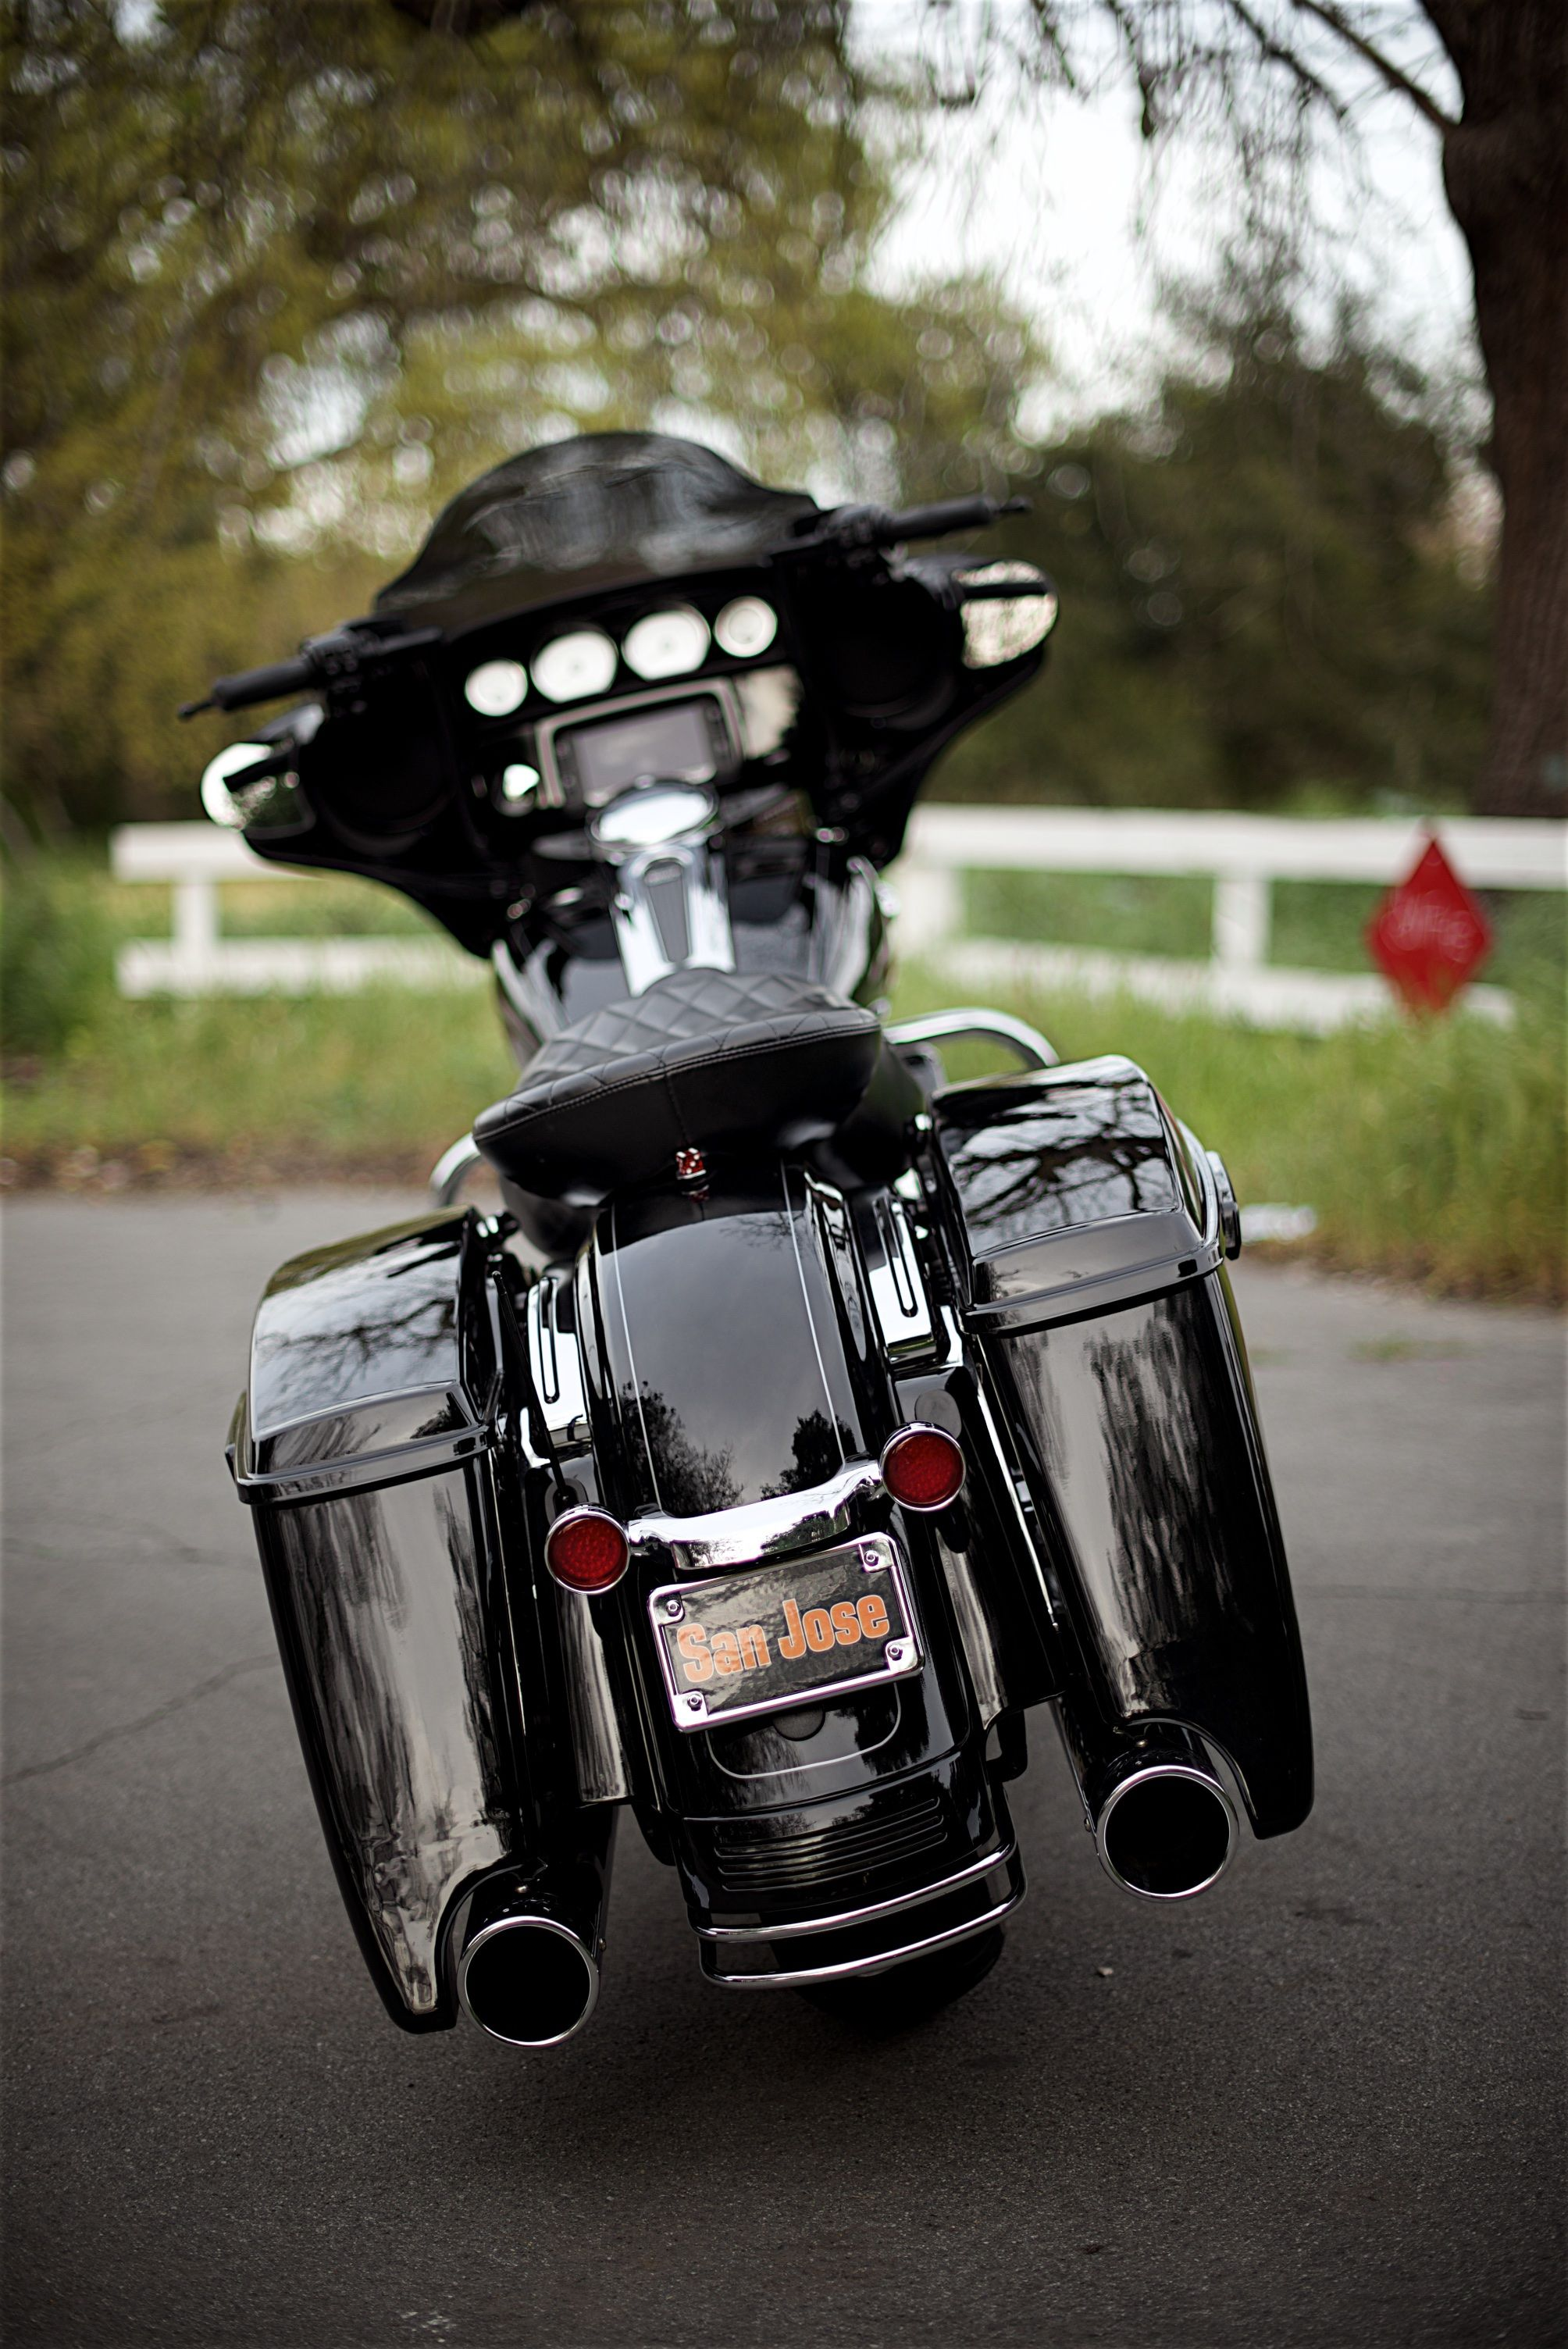 a dyna bagger extended bags custom rear fender trim. Black Bedroom Furniture Sets. Home Design Ideas